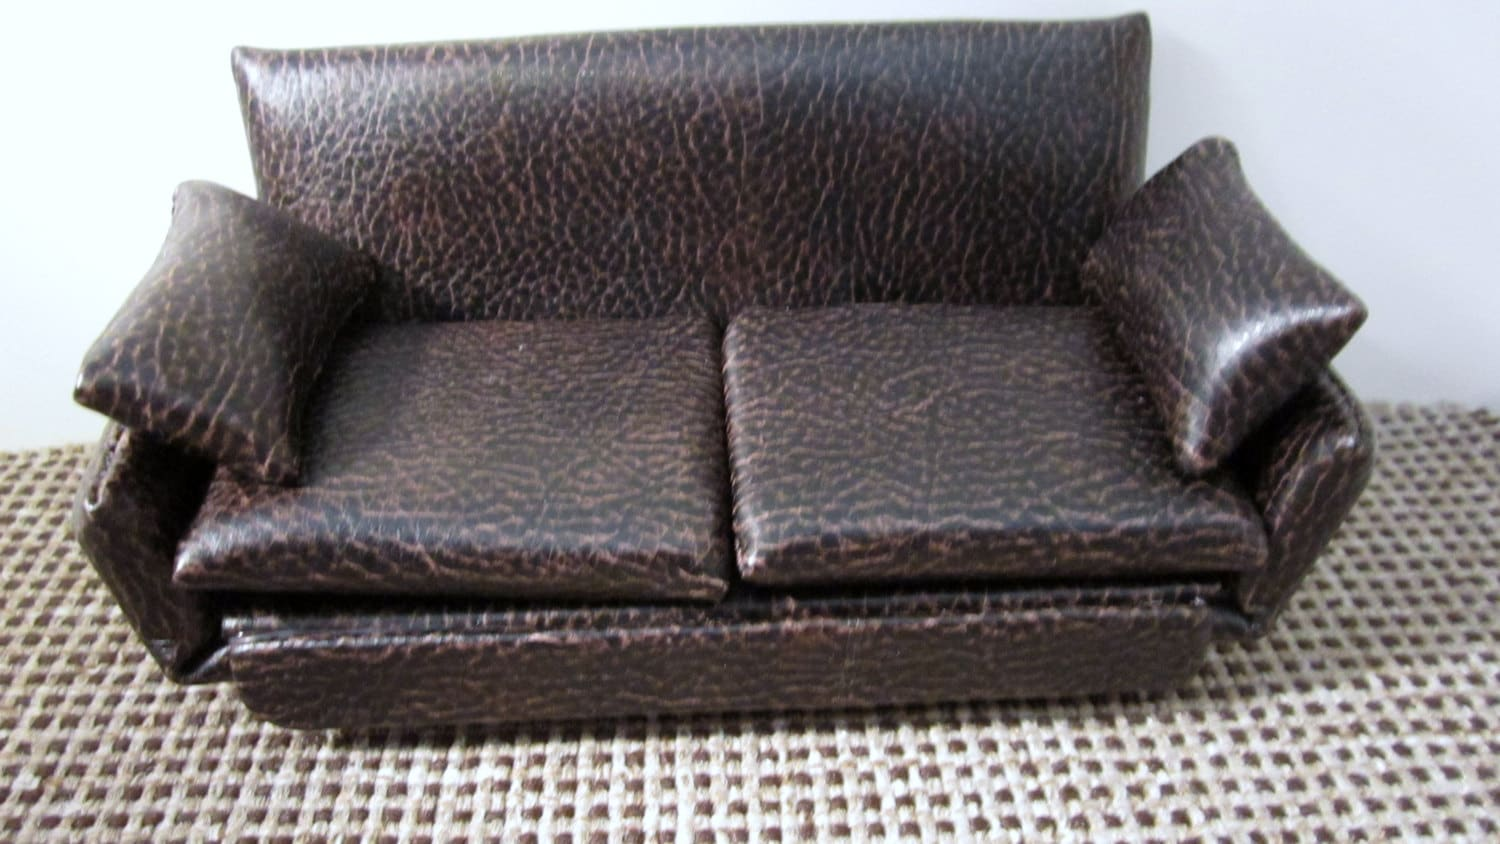 Overstuffed Leather Chair And Ottoman Leather Couch And Overstuffed Chair With Ottoman